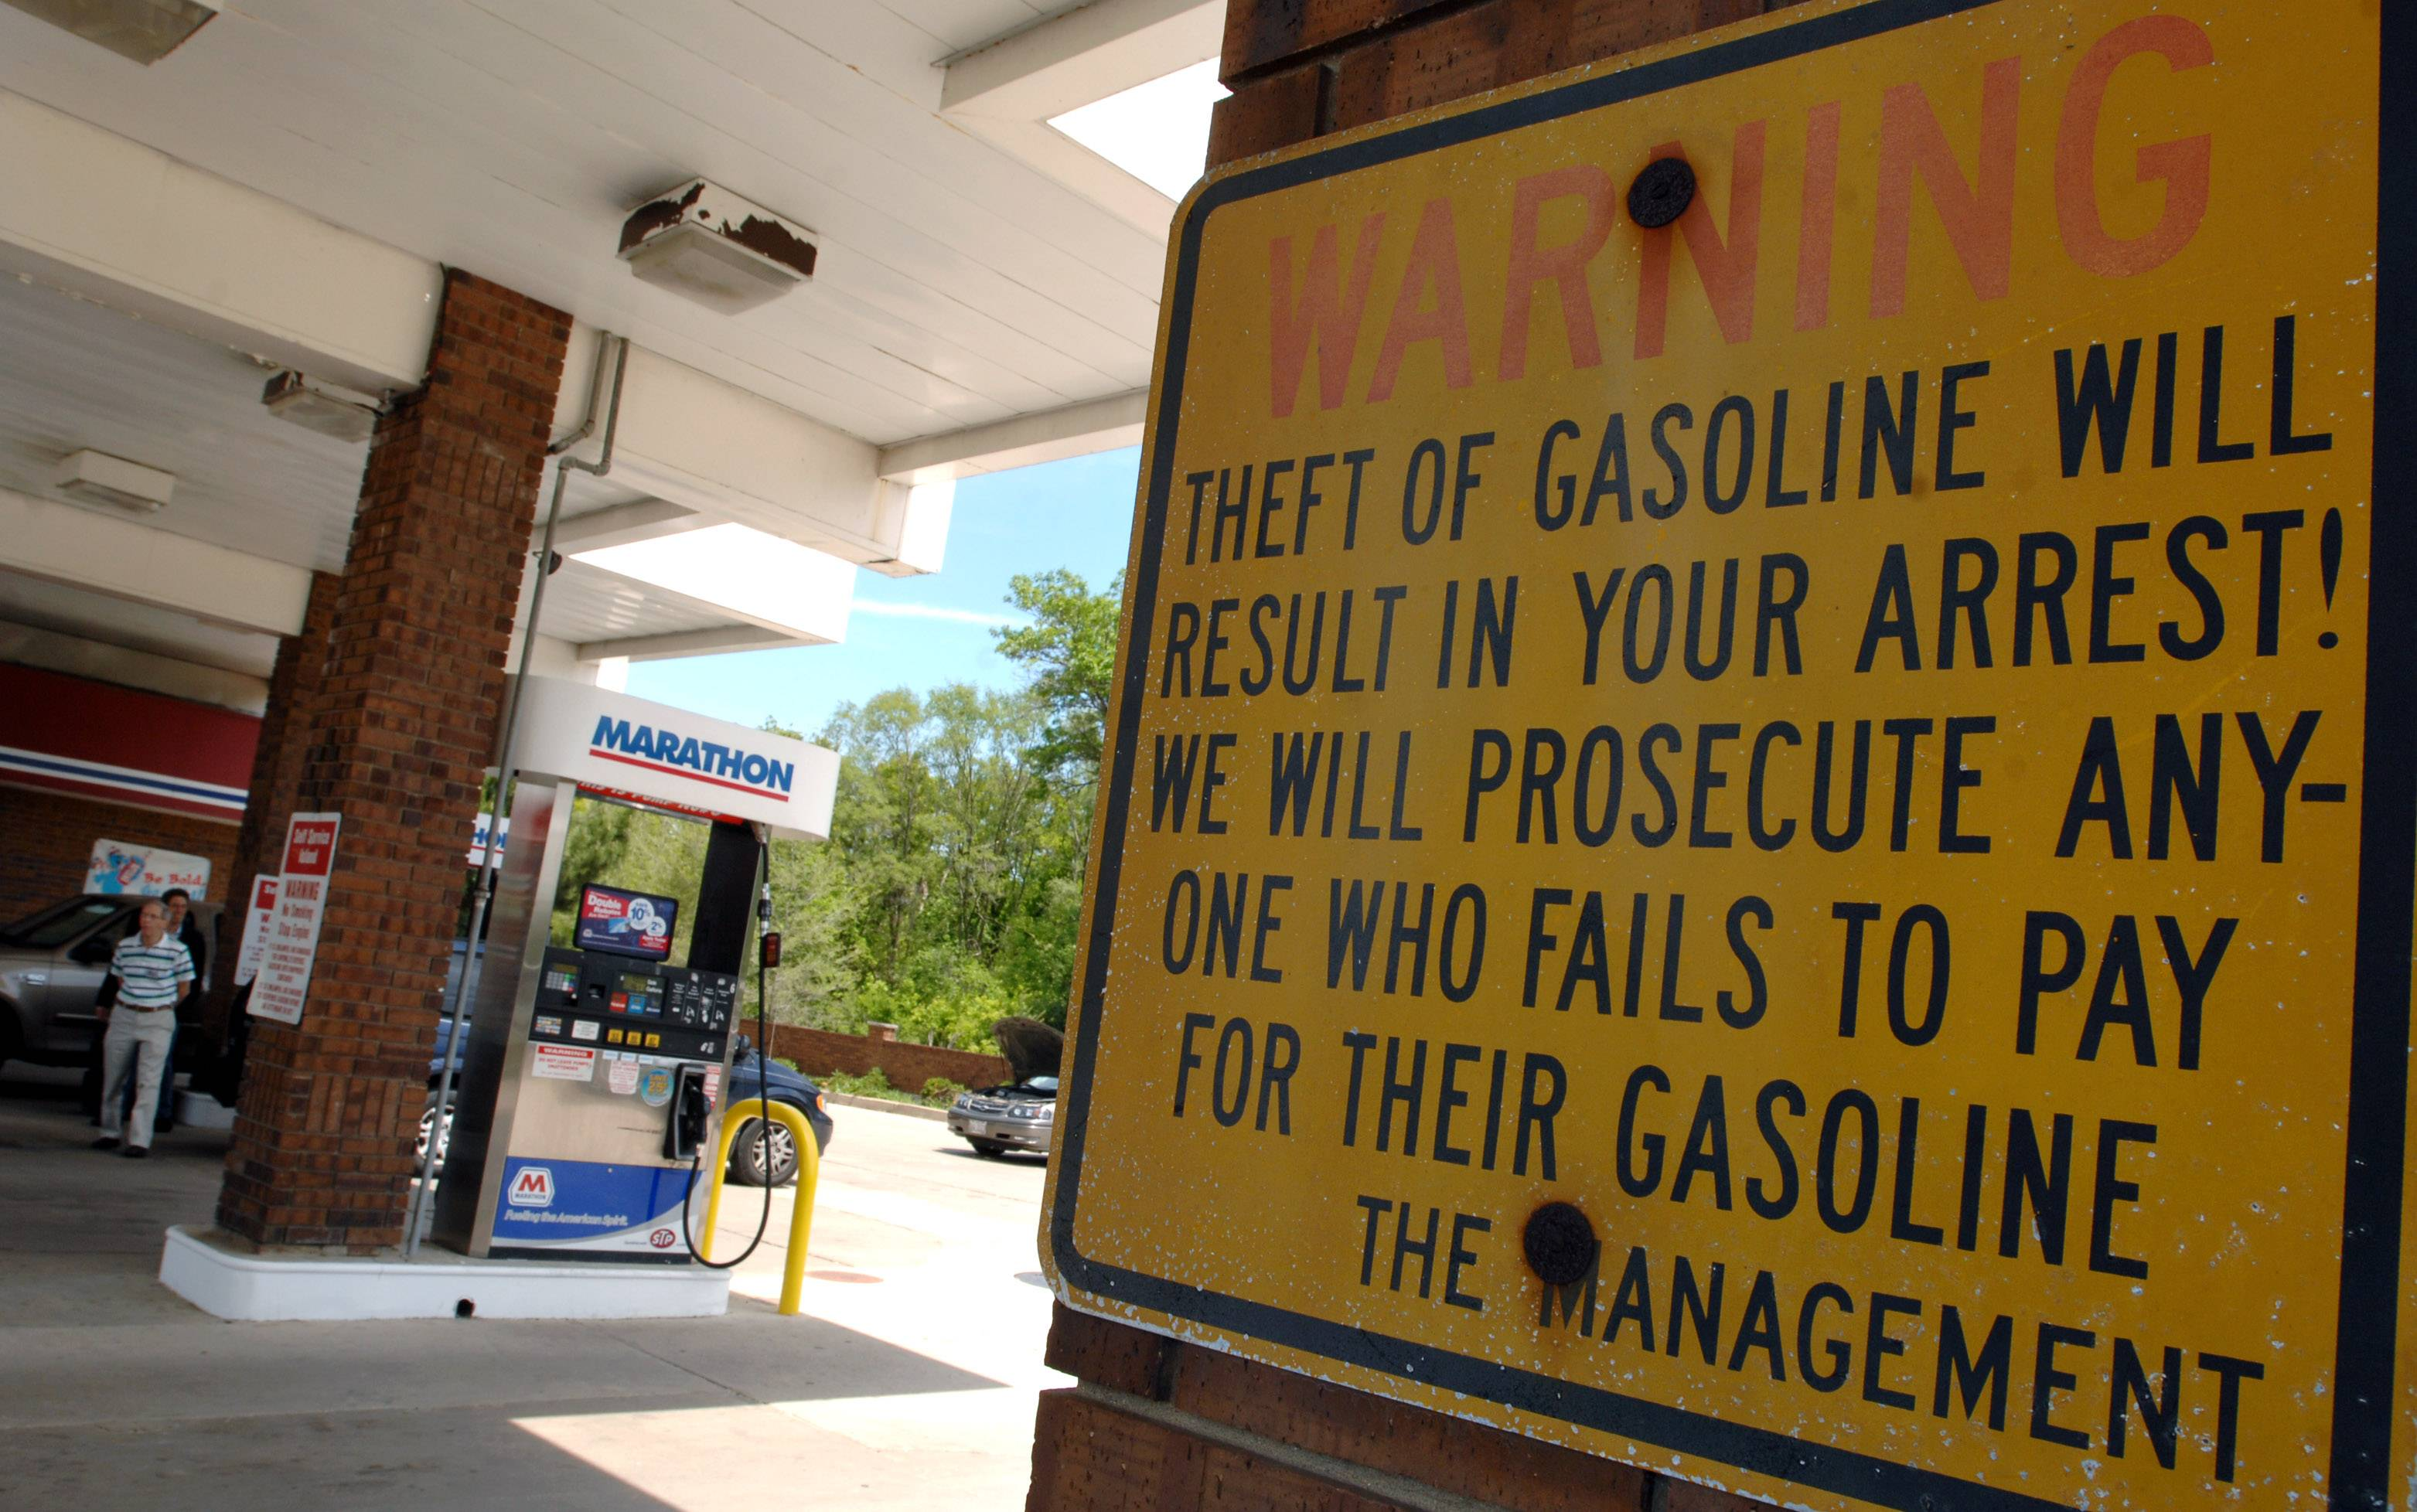 Motorists in the U.S. may pay the most for gasoline in six years over the July 4 Independence Day holiday as the escalating conflict in Iraq pushes oil prices higher during the peak driving season.